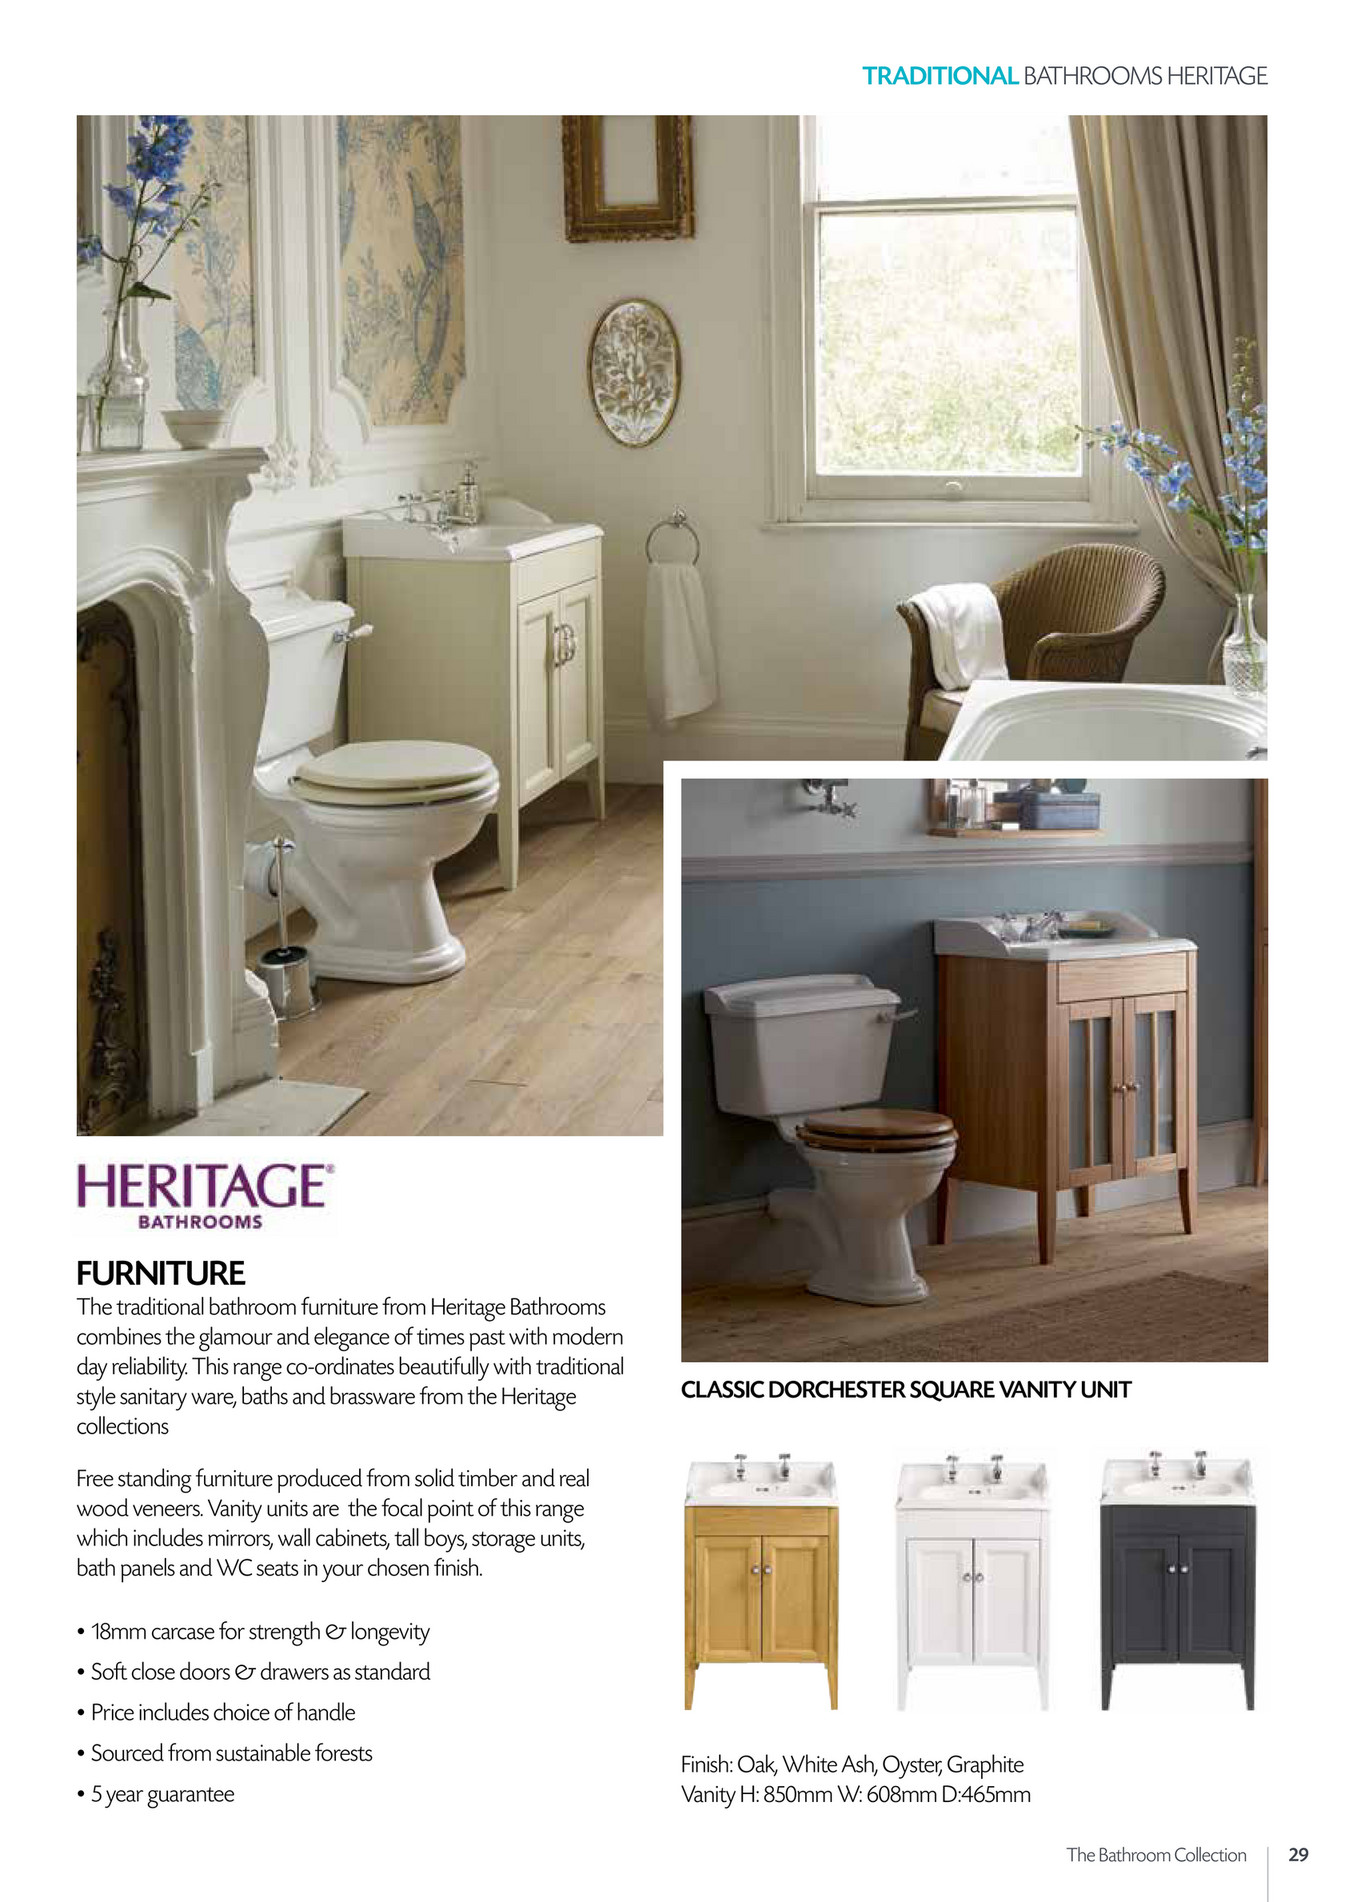 Enjoyable Heat Merchants Tubs Tiles Plumbing Brochure 2016 Page Theyellowbook Wood Chair Design Ideas Theyellowbookinfo